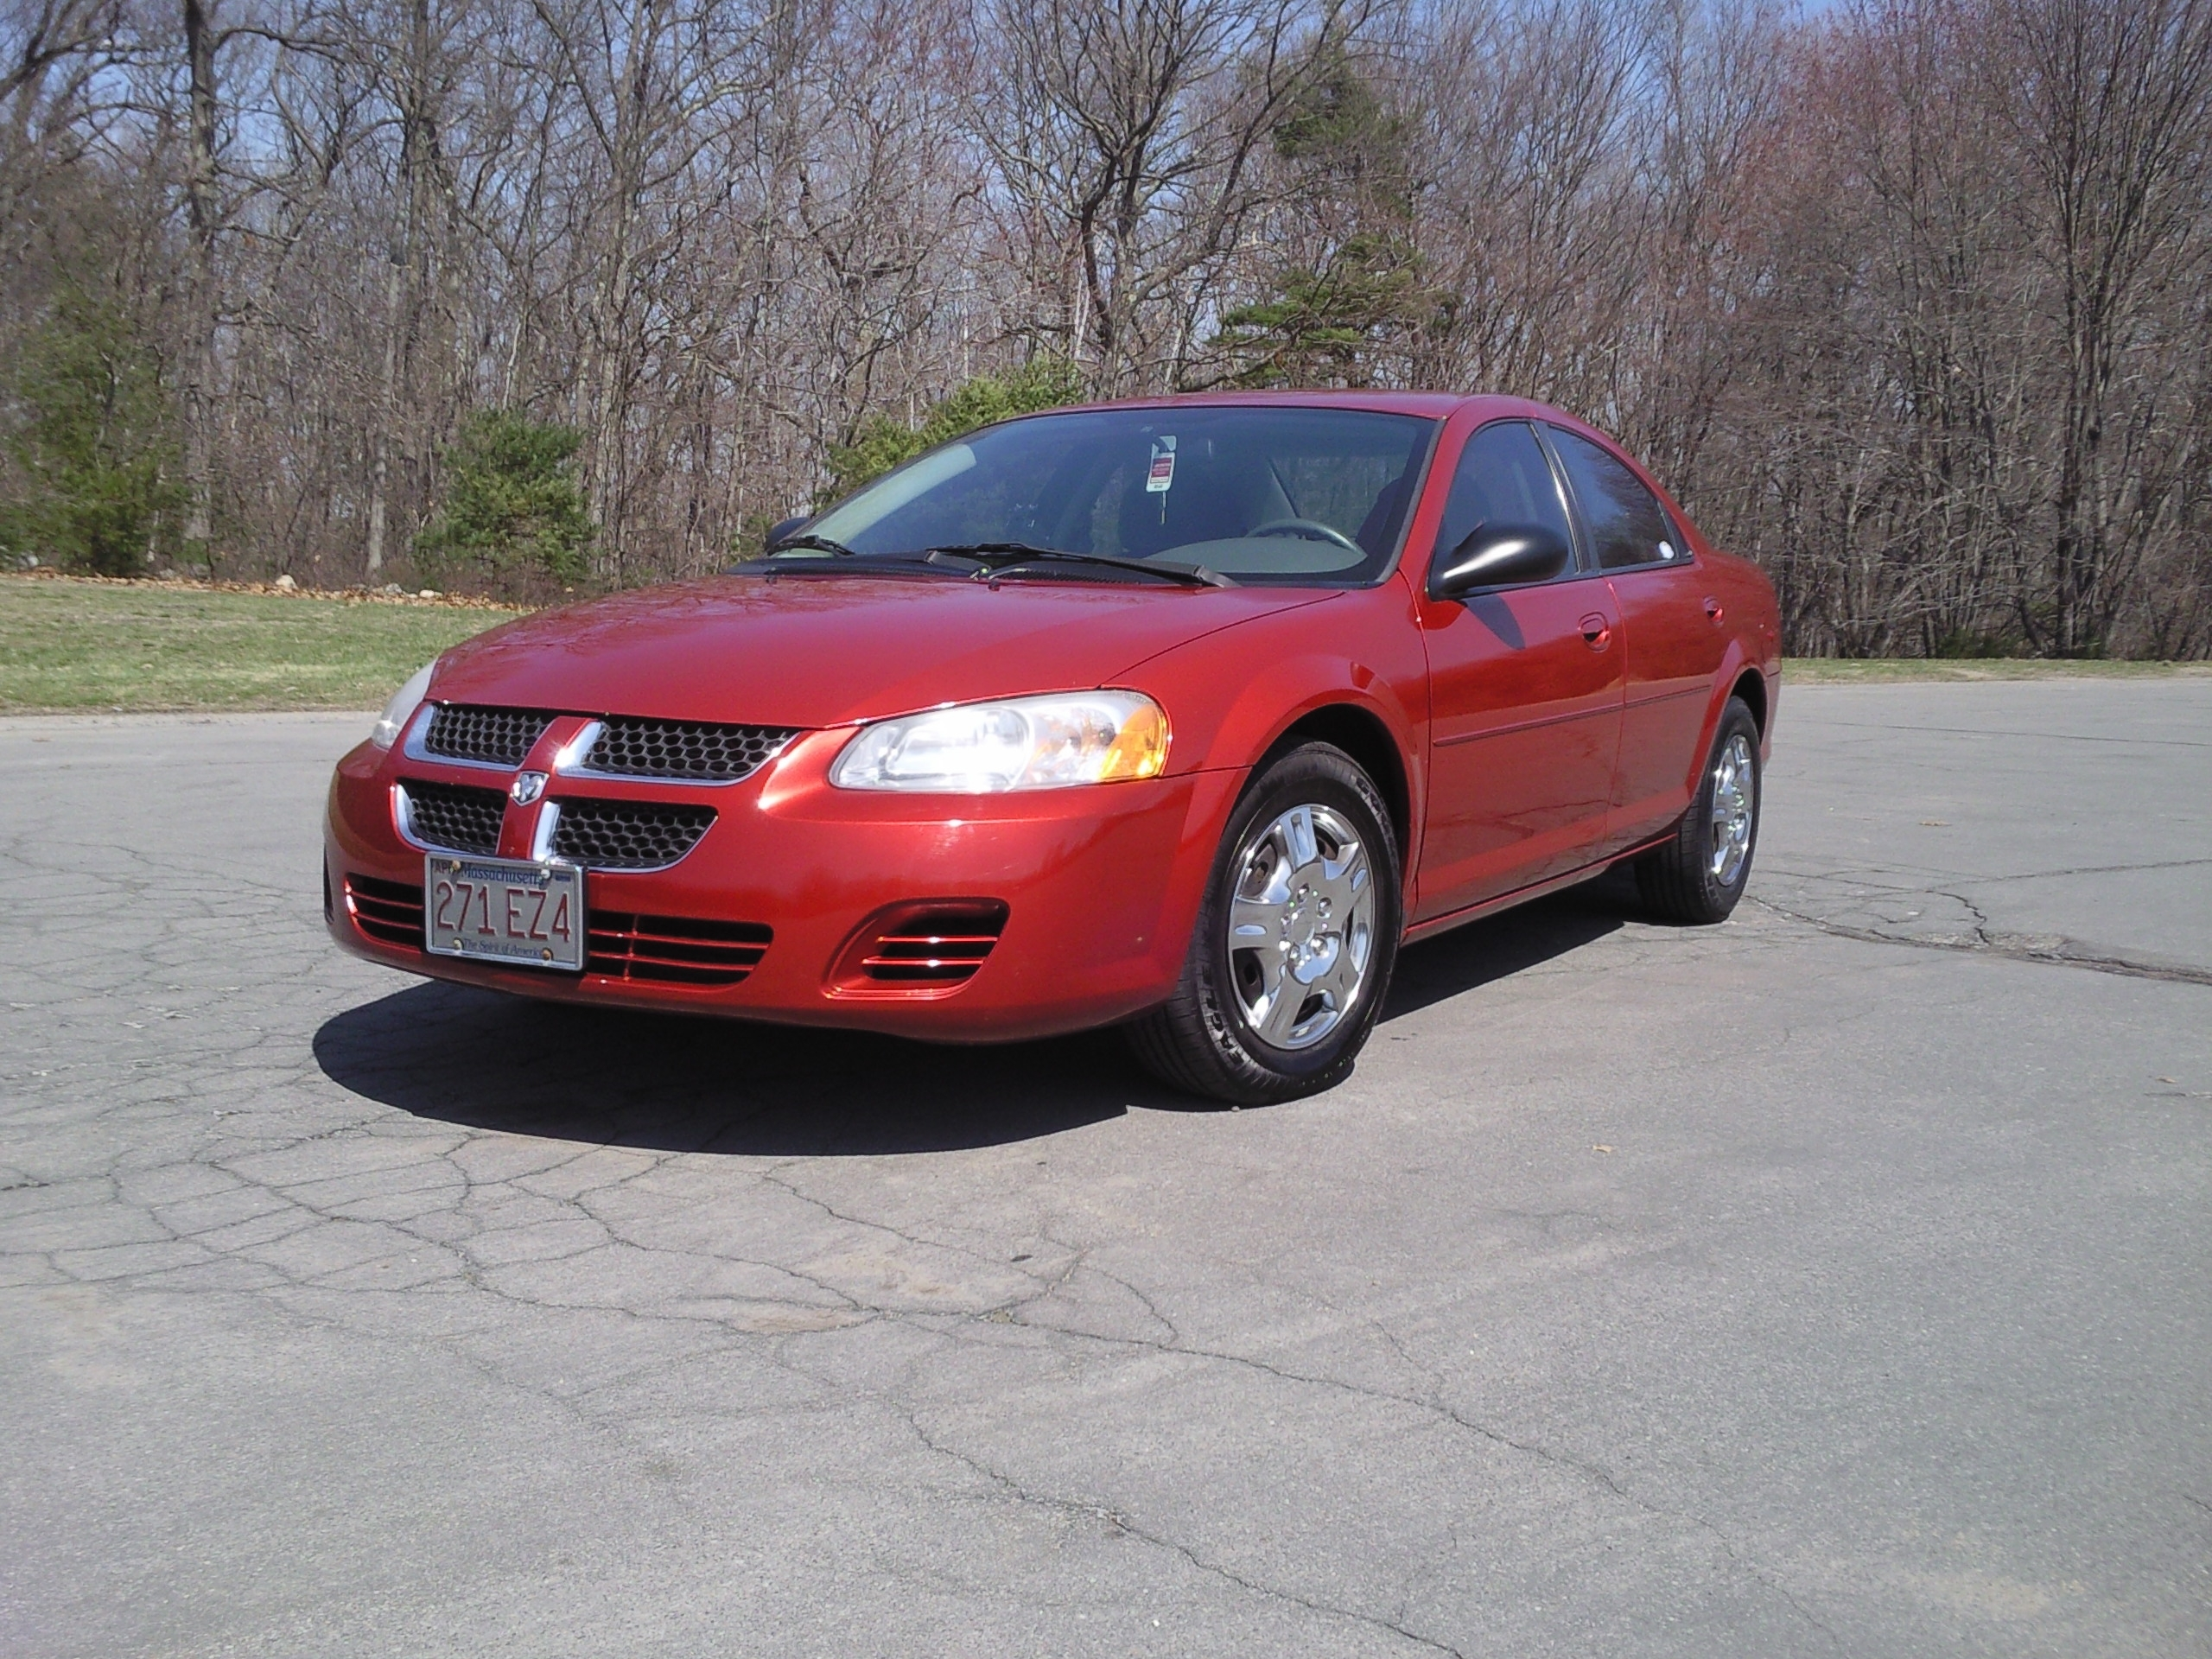 zwilkins8 39 s 2005 dodge stratus sxt sedan 4d in boston ma. Black Bedroom Furniture Sets. Home Design Ideas